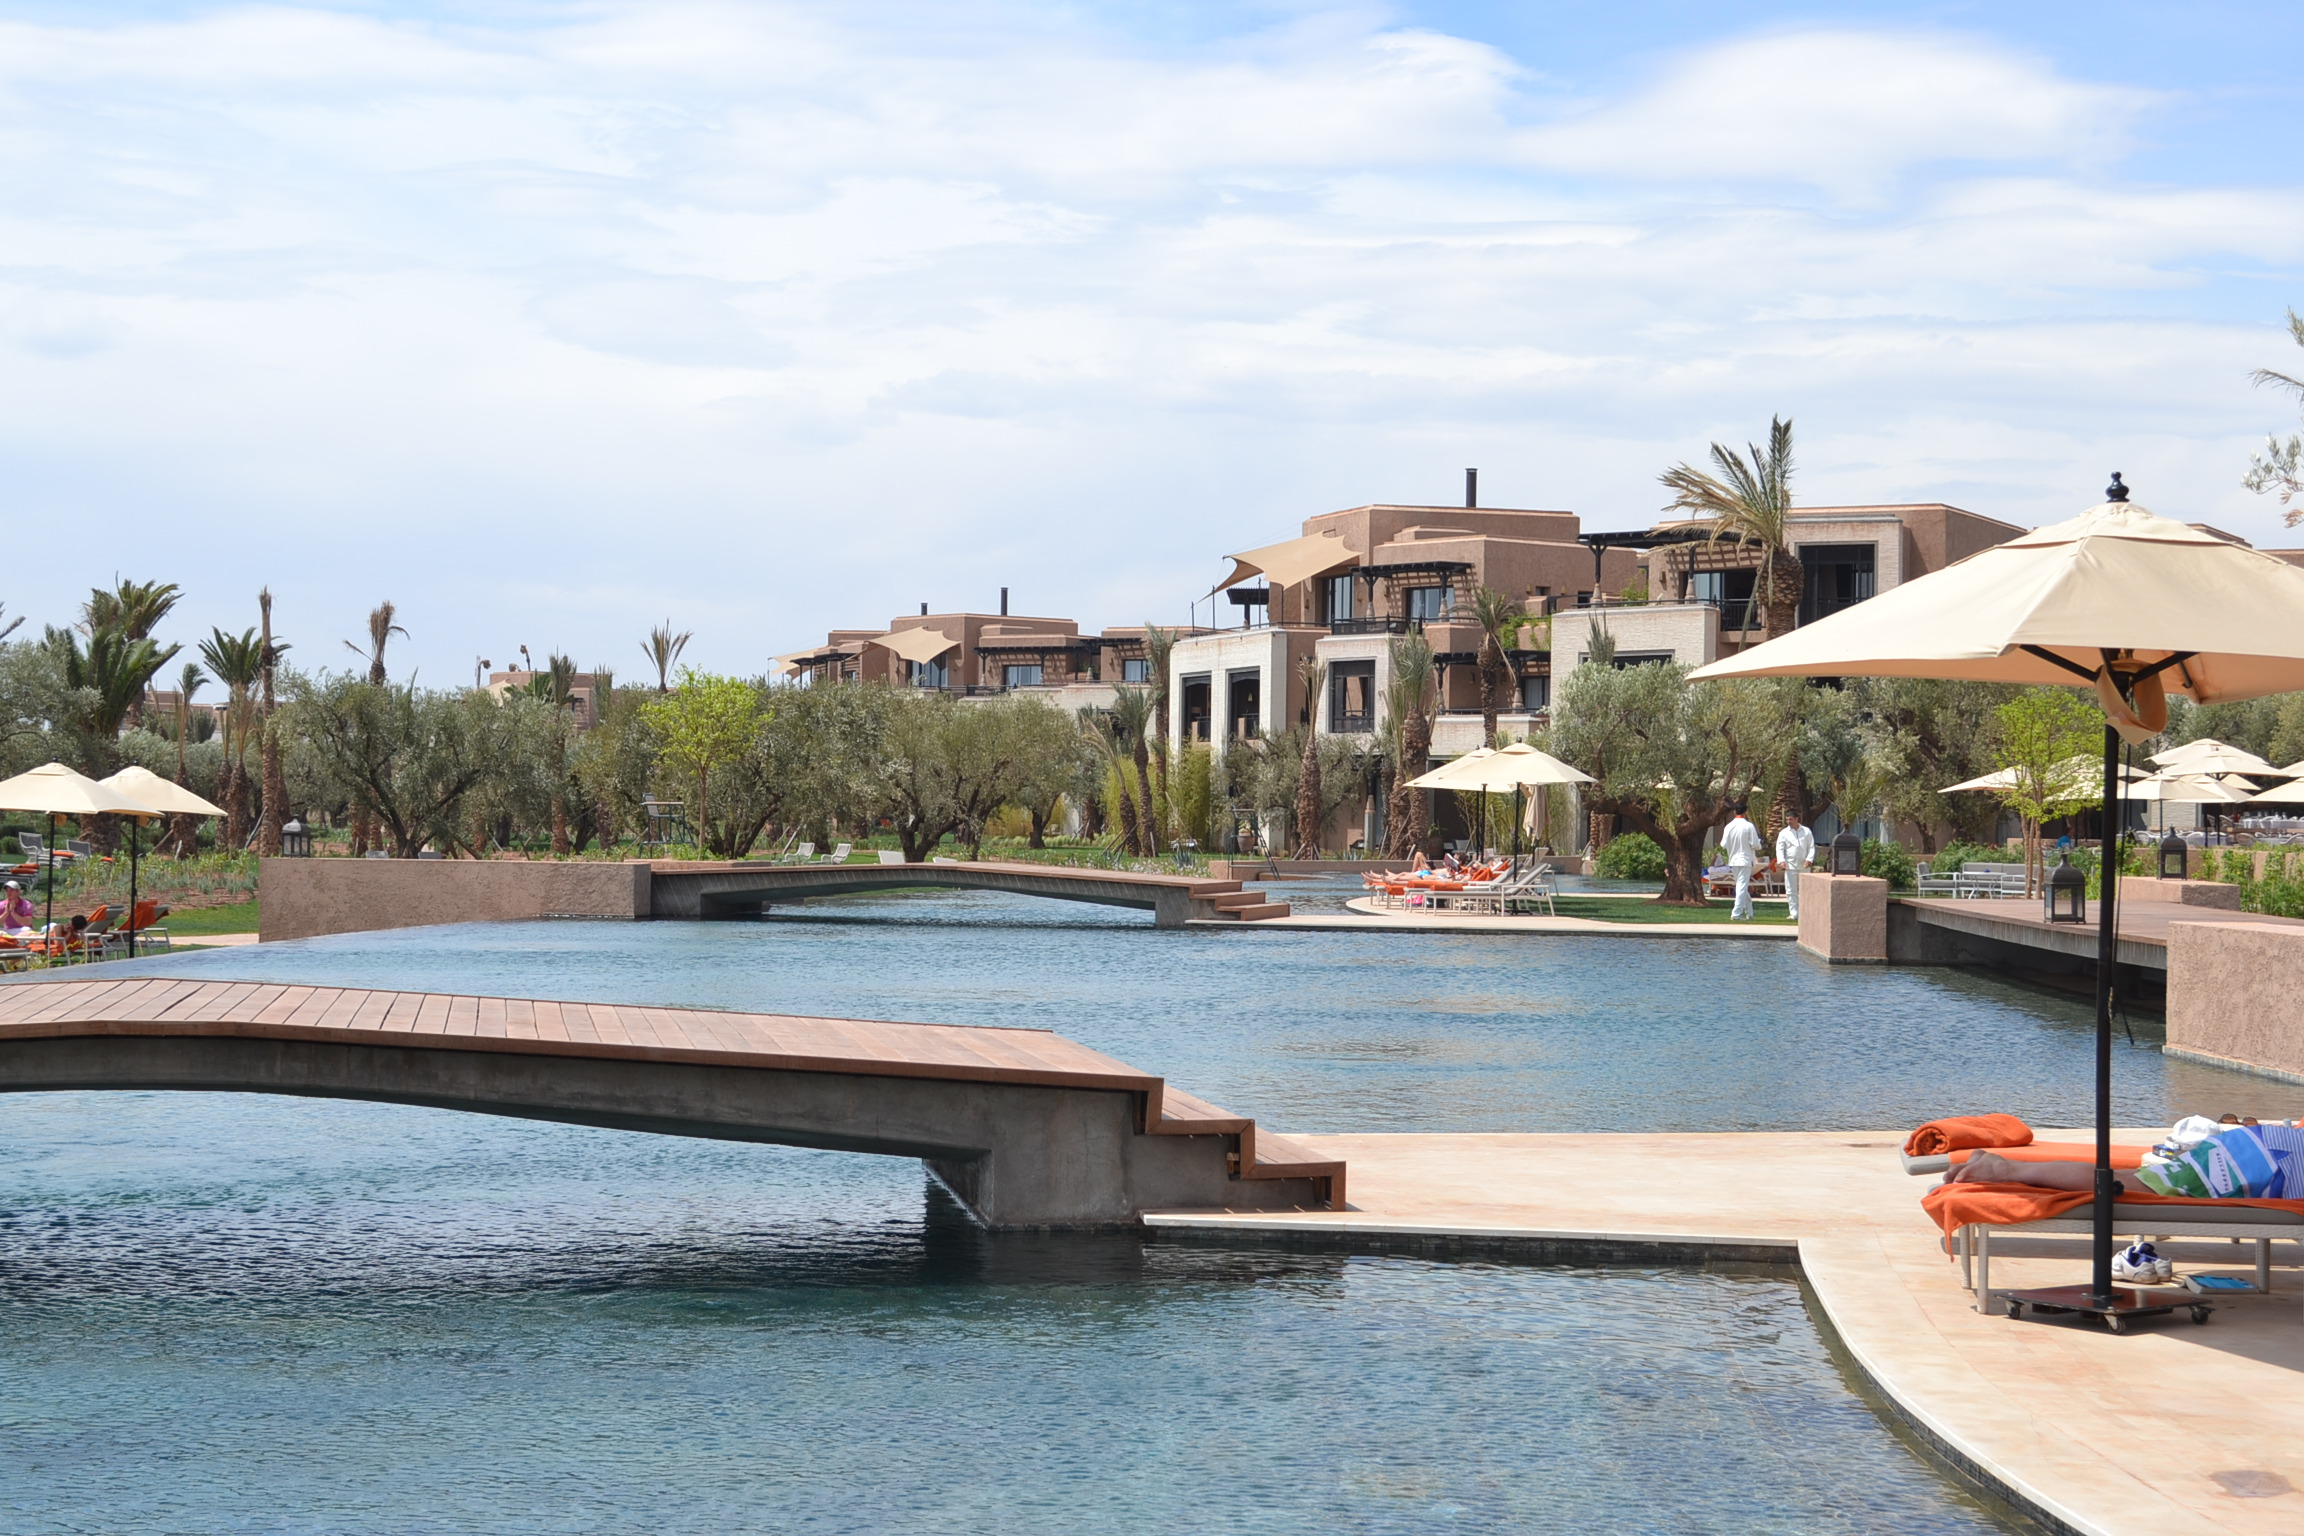 Royal palm marrakech le nouveau joyau palace express for Piscine julien